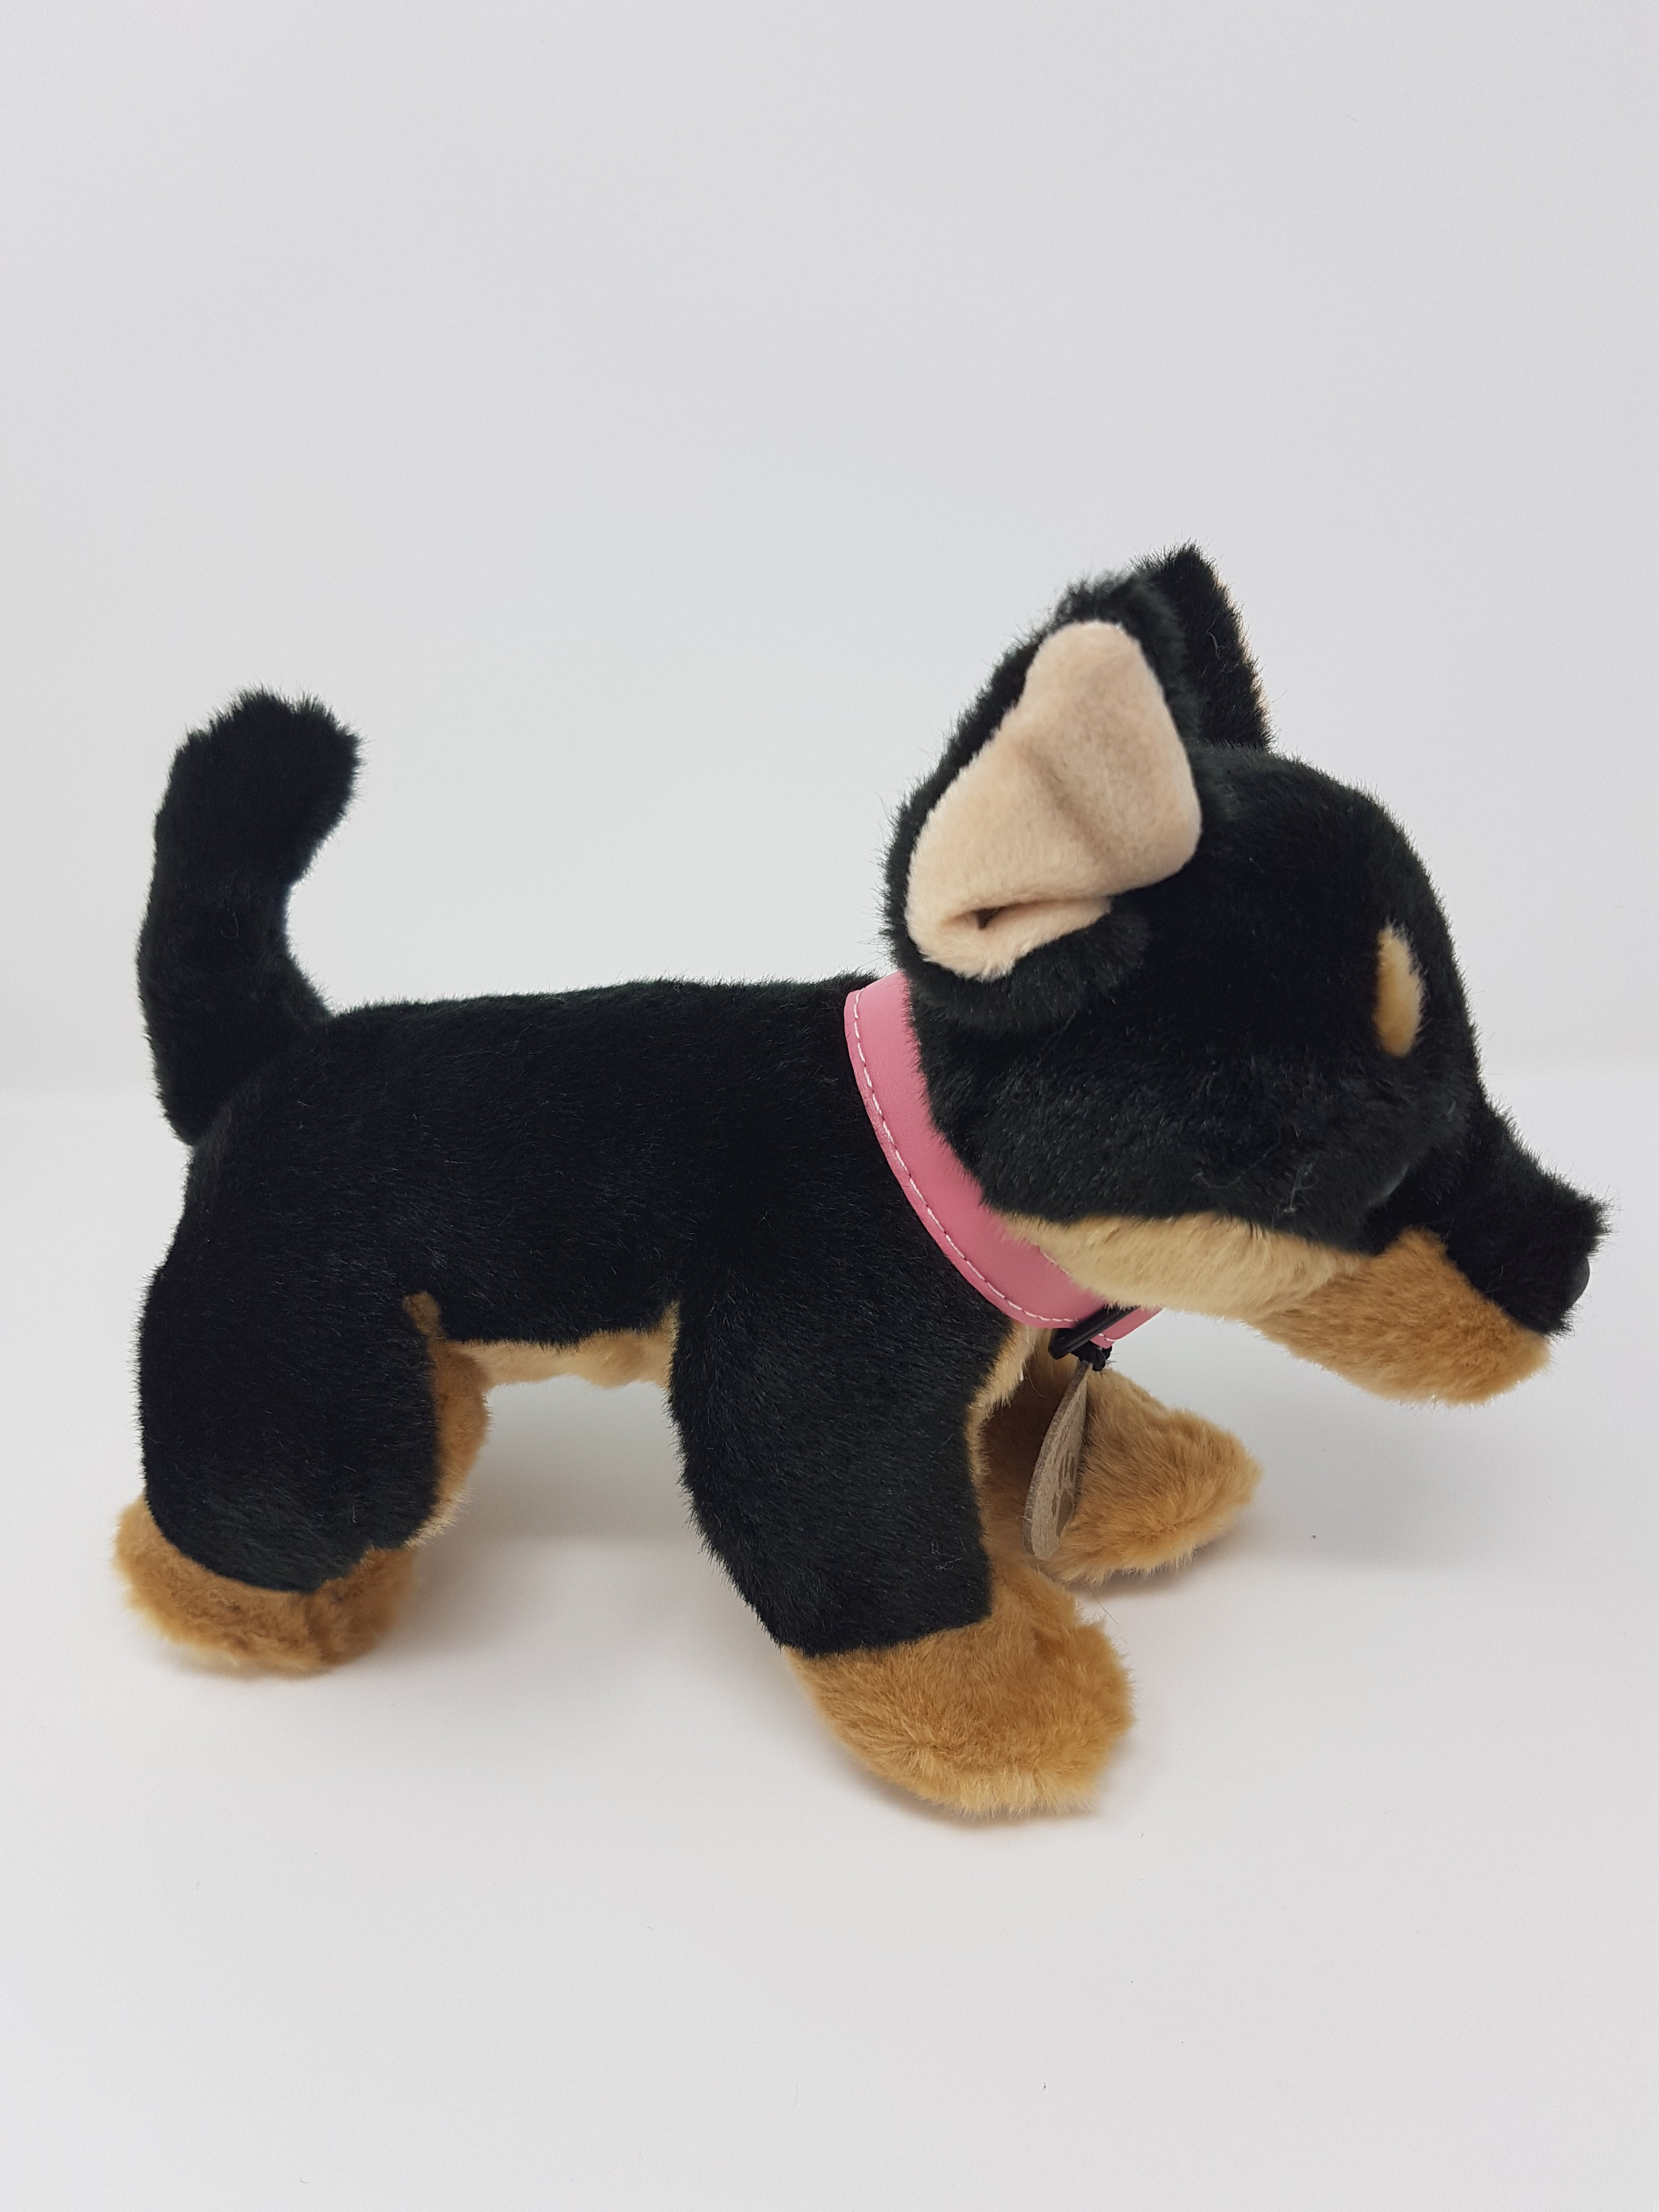 MISSING SHOP TAGS - Keel Toys Chihuahua Puppy Plush 25cm